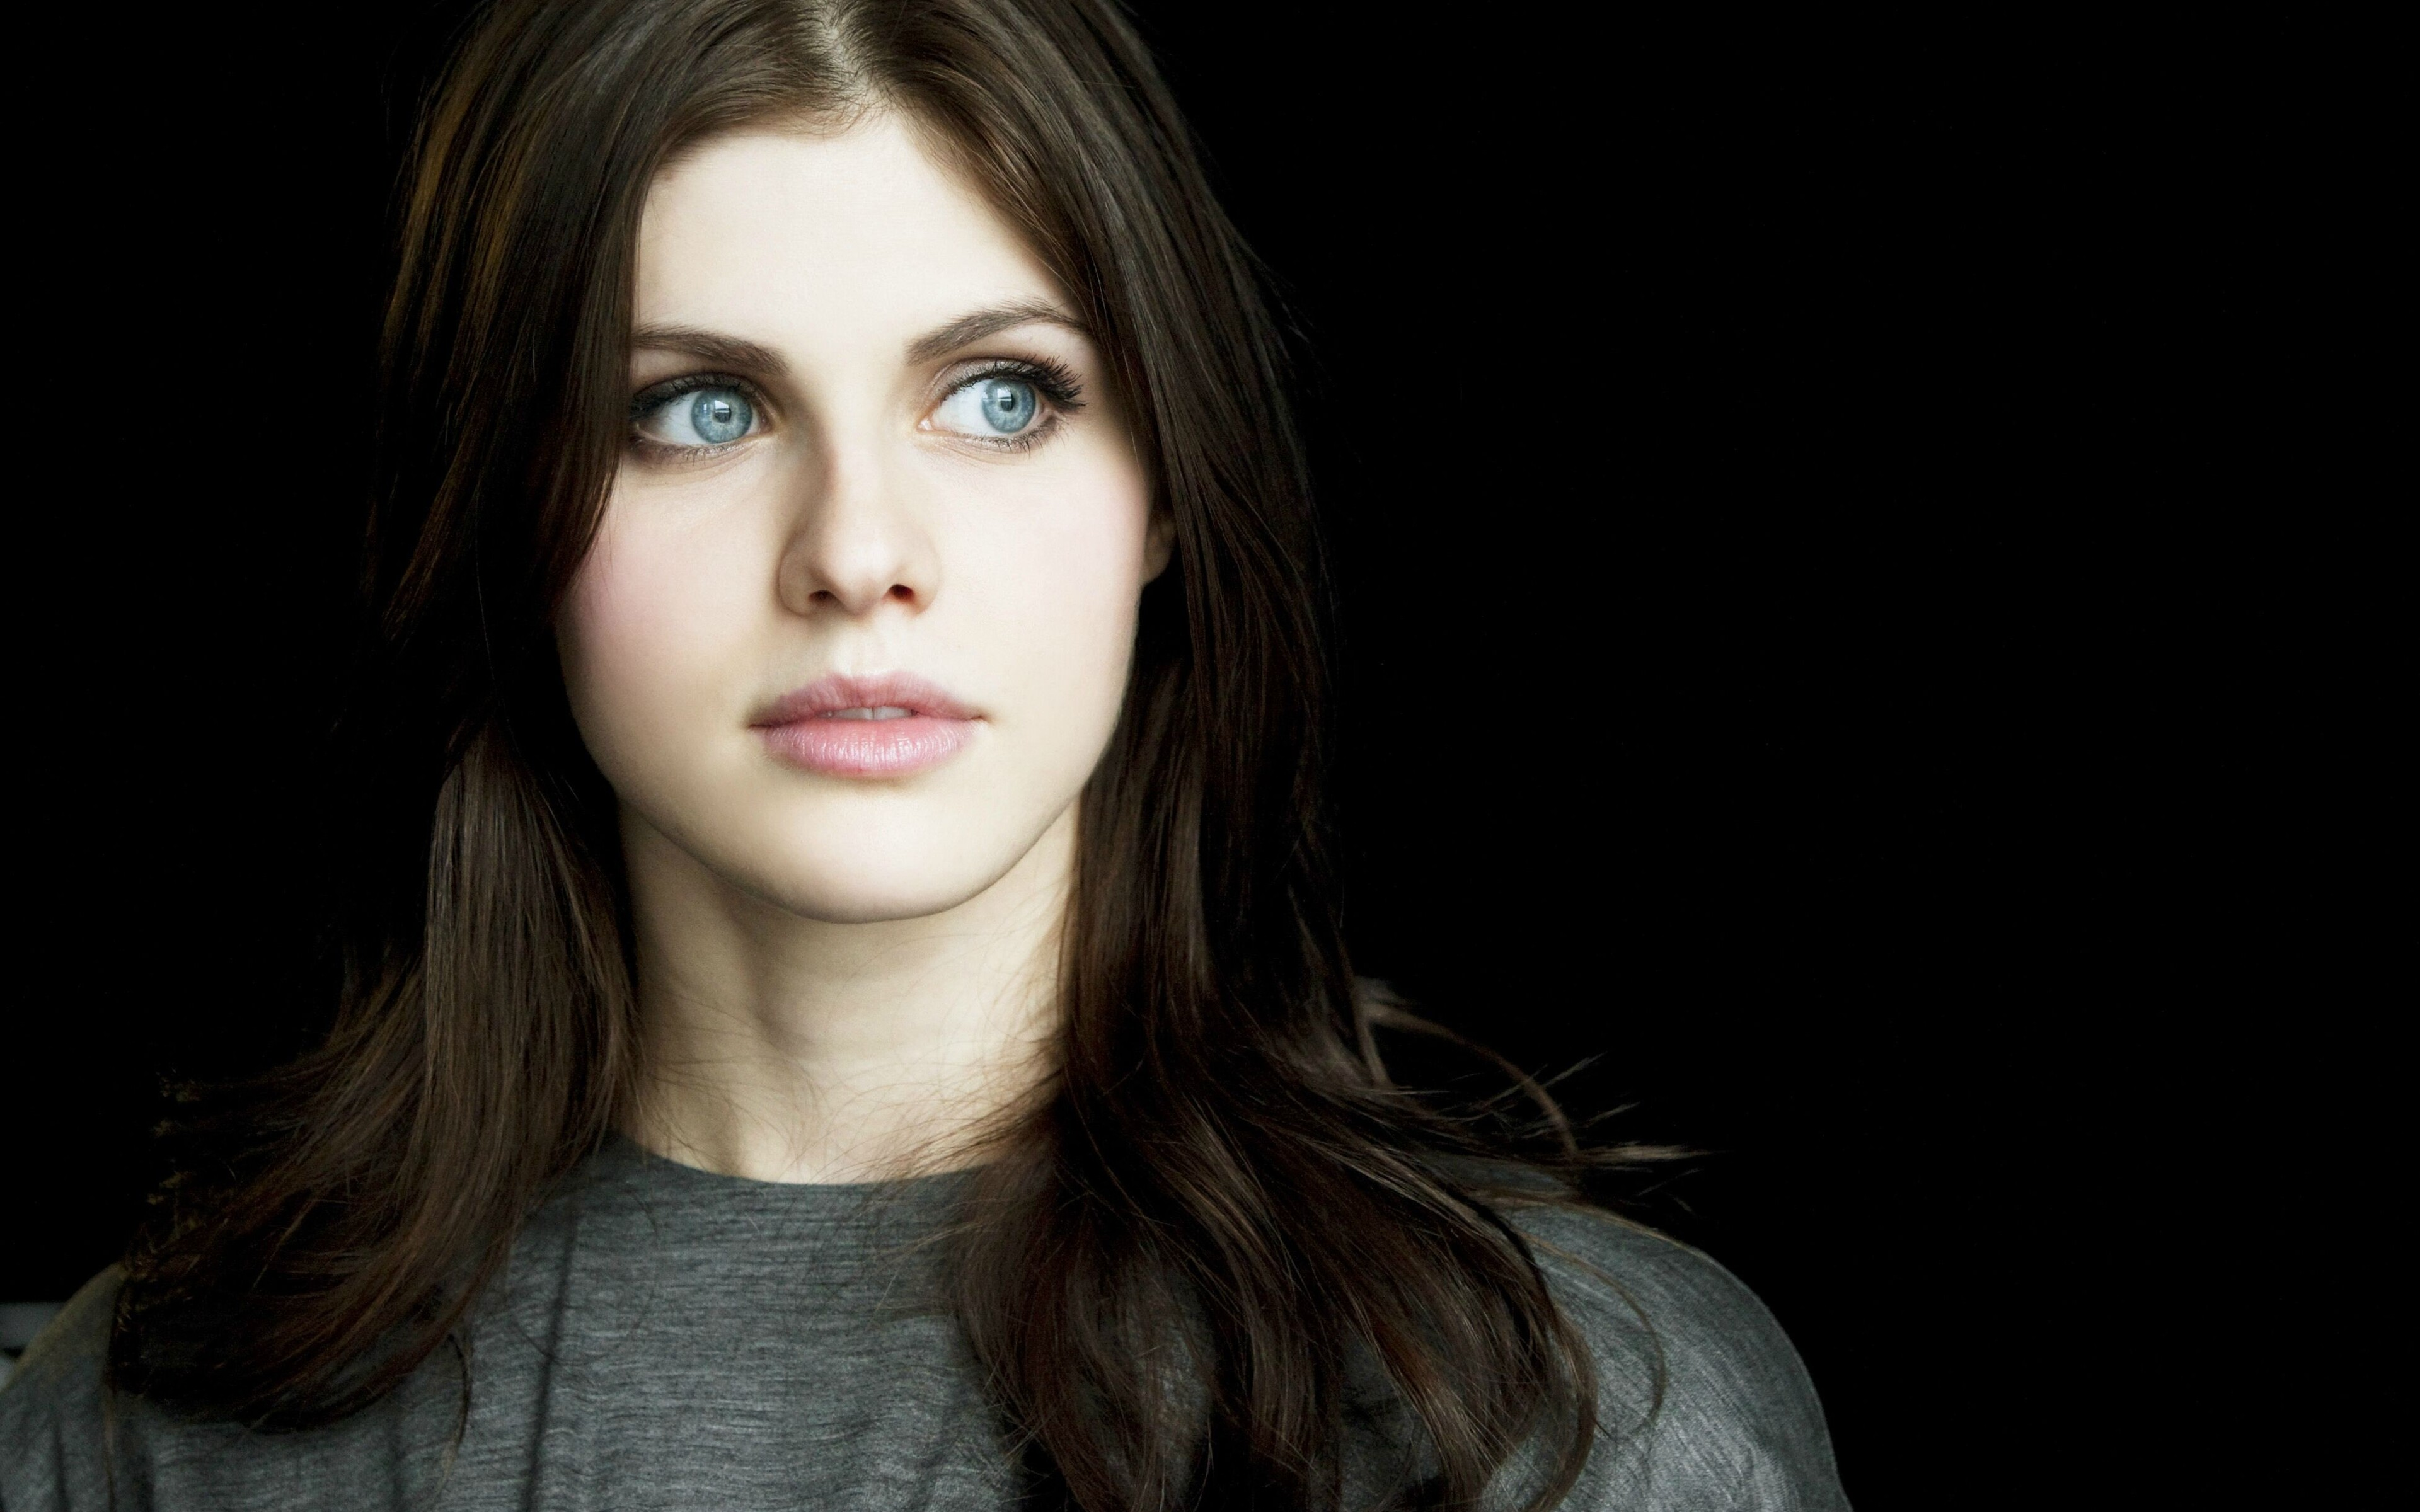 Alexandra Daddario Beautiful Eyes 4k Cl